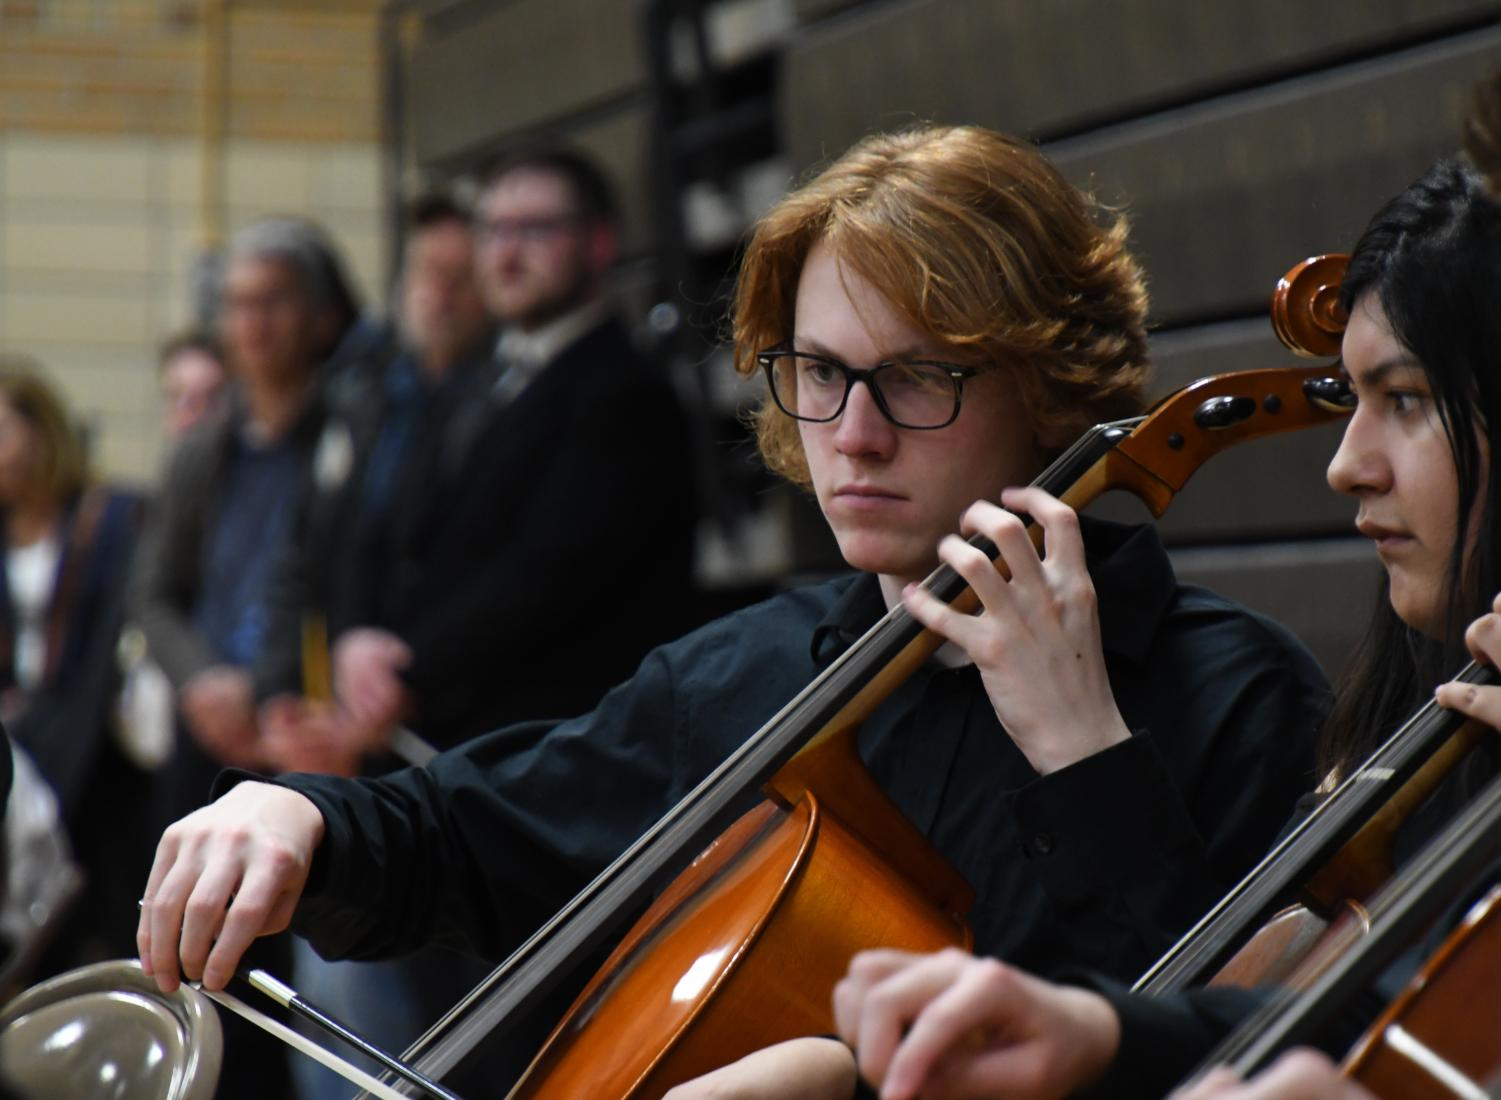 Junior Max Holden plays the Cello during the district orchestra performance in the  Old Gym April. 5. The High School orchestra performed last after the 4th, 5th, 6th, 7th, 8th, and chamber orchestra.